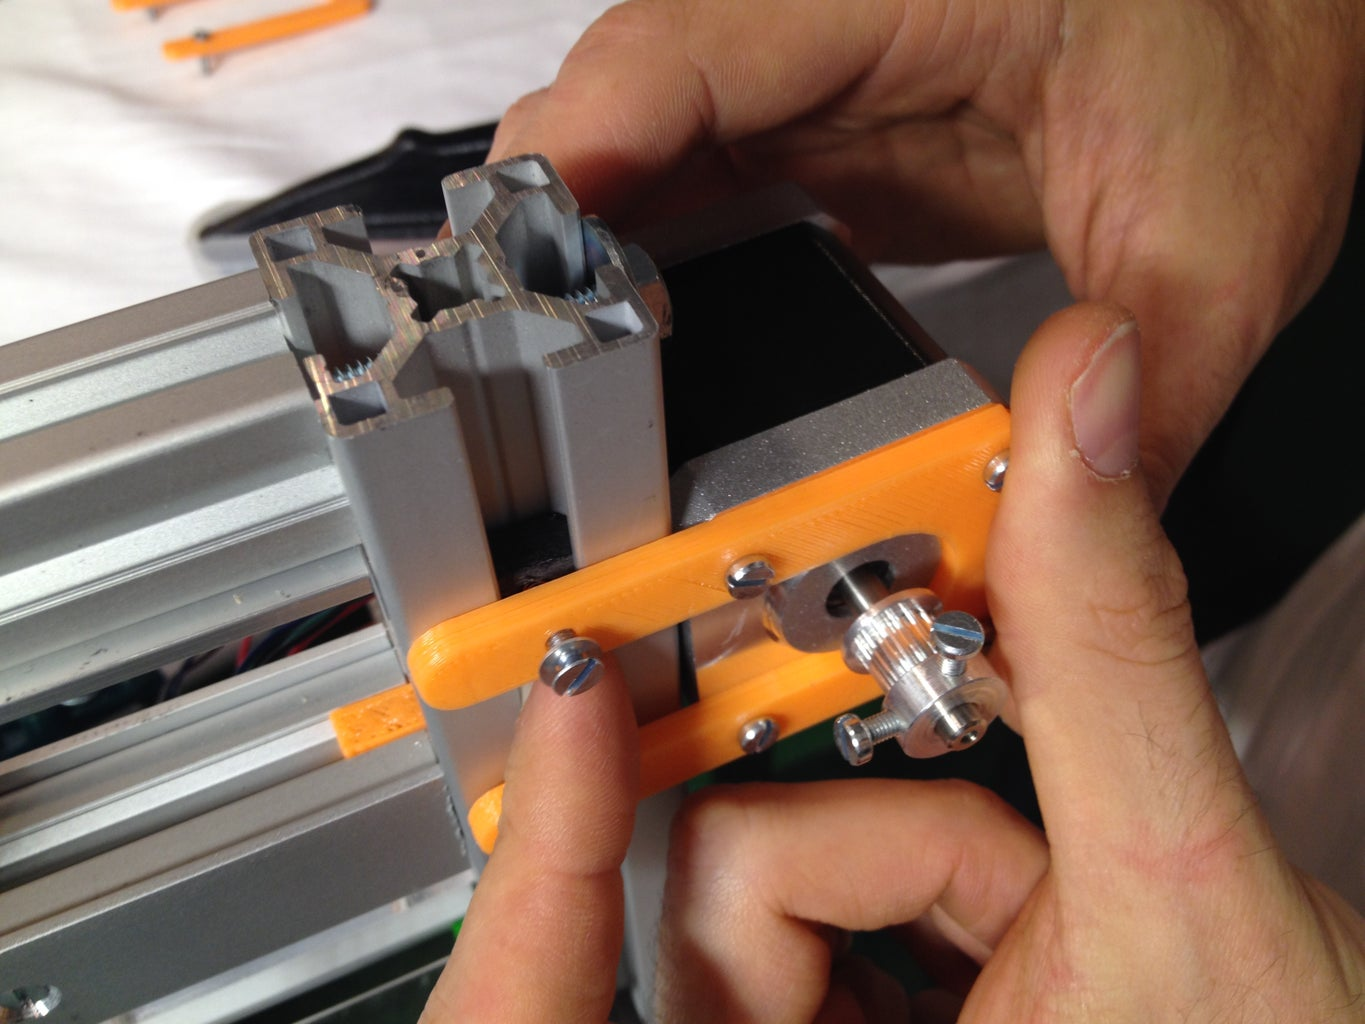 Place the Stepper Motor